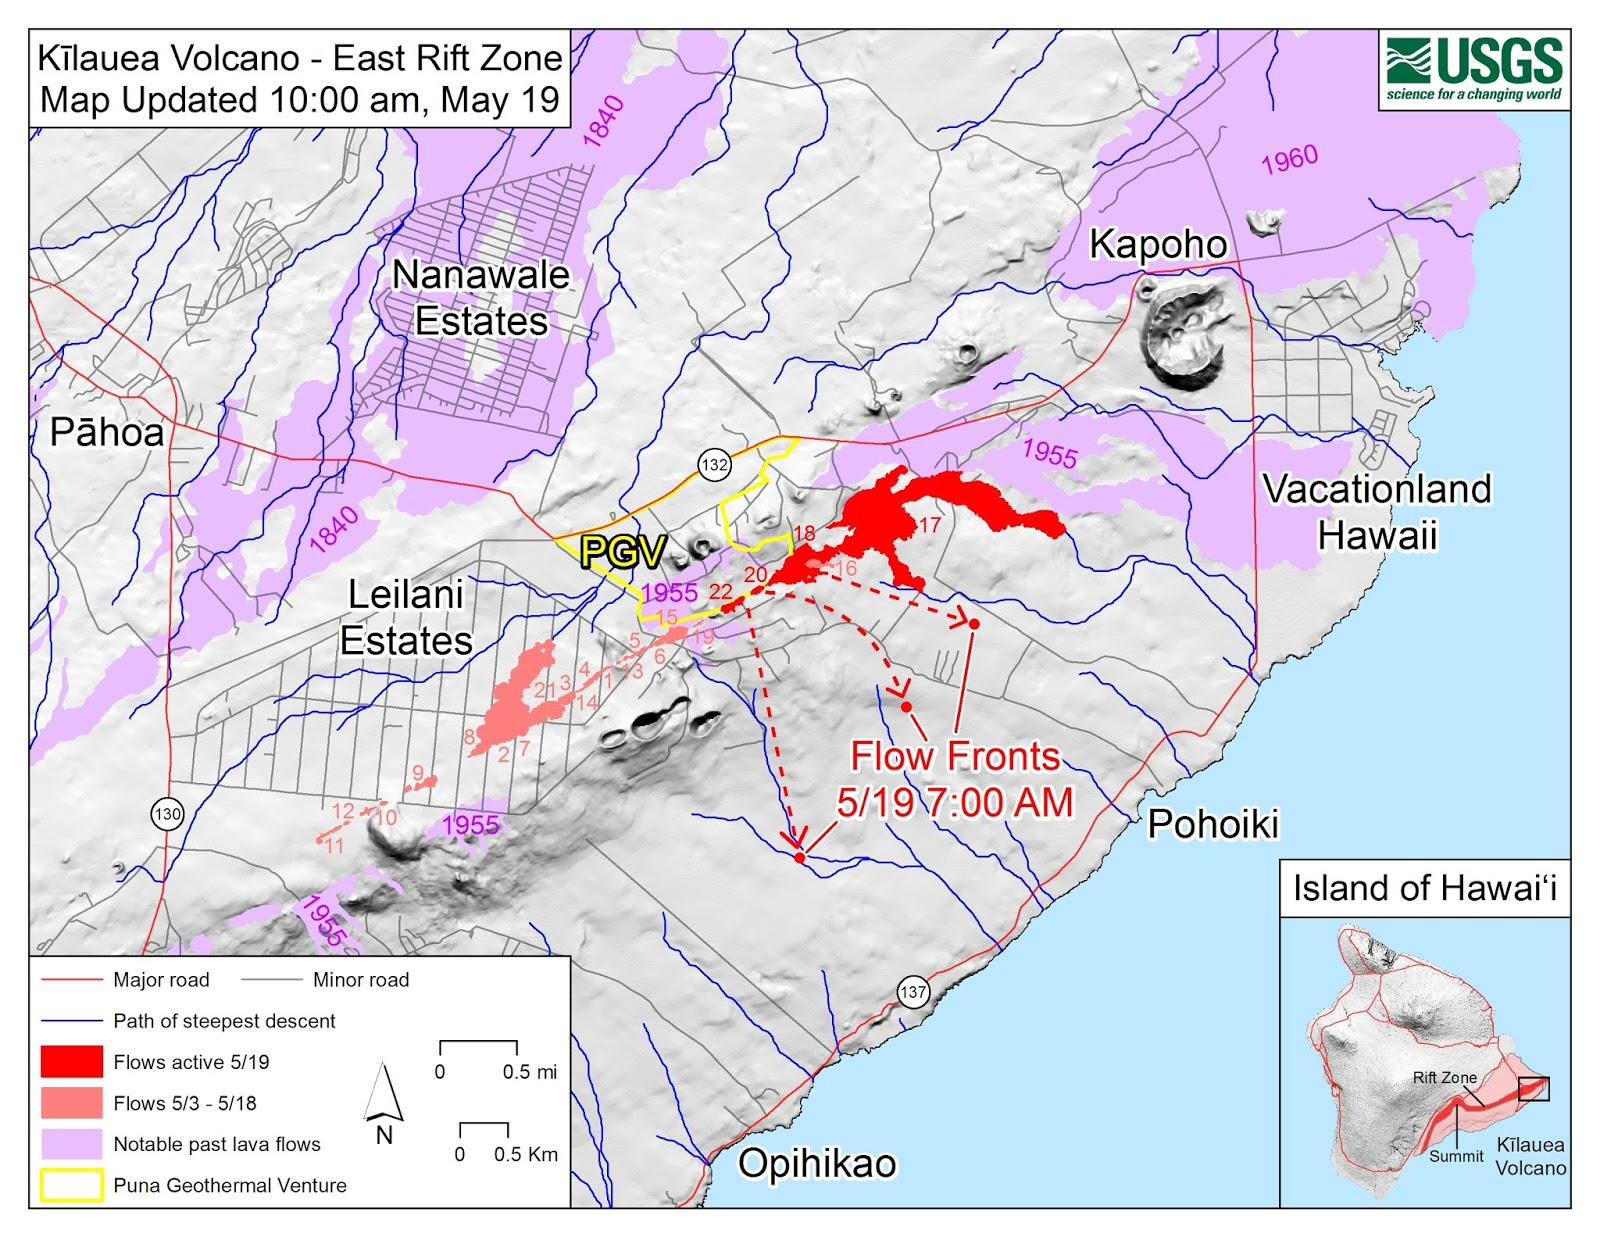 two lava flows are heading south to the sea see map below and may reach and interrupt hwy 137 near mackenzie state recreation area west of pohoiki